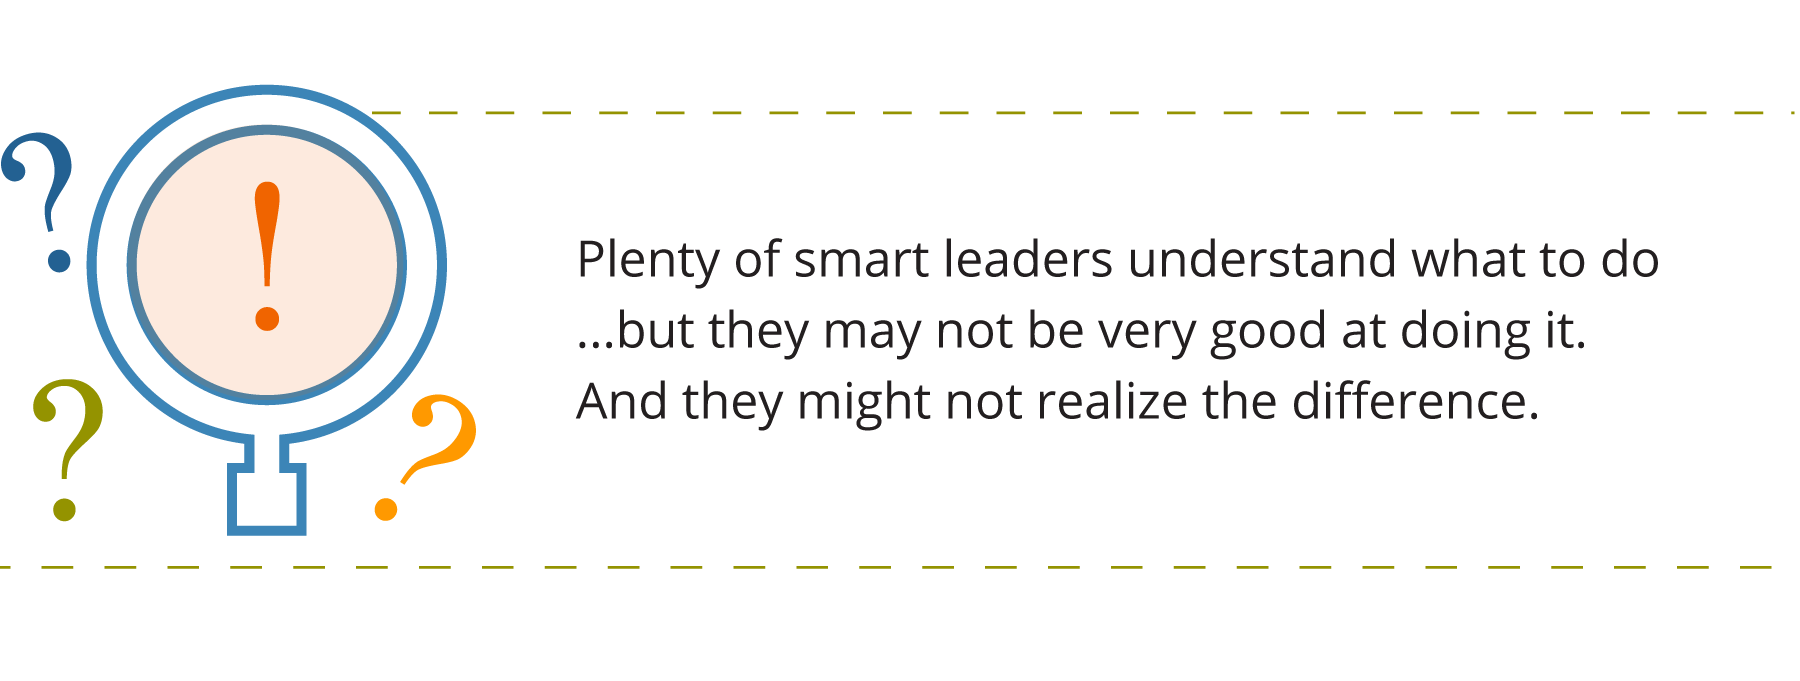 Graphic of a magnifying class with an exclamation point inside, and question marks around it. Accompanied by quote about leadership assessment types, which says